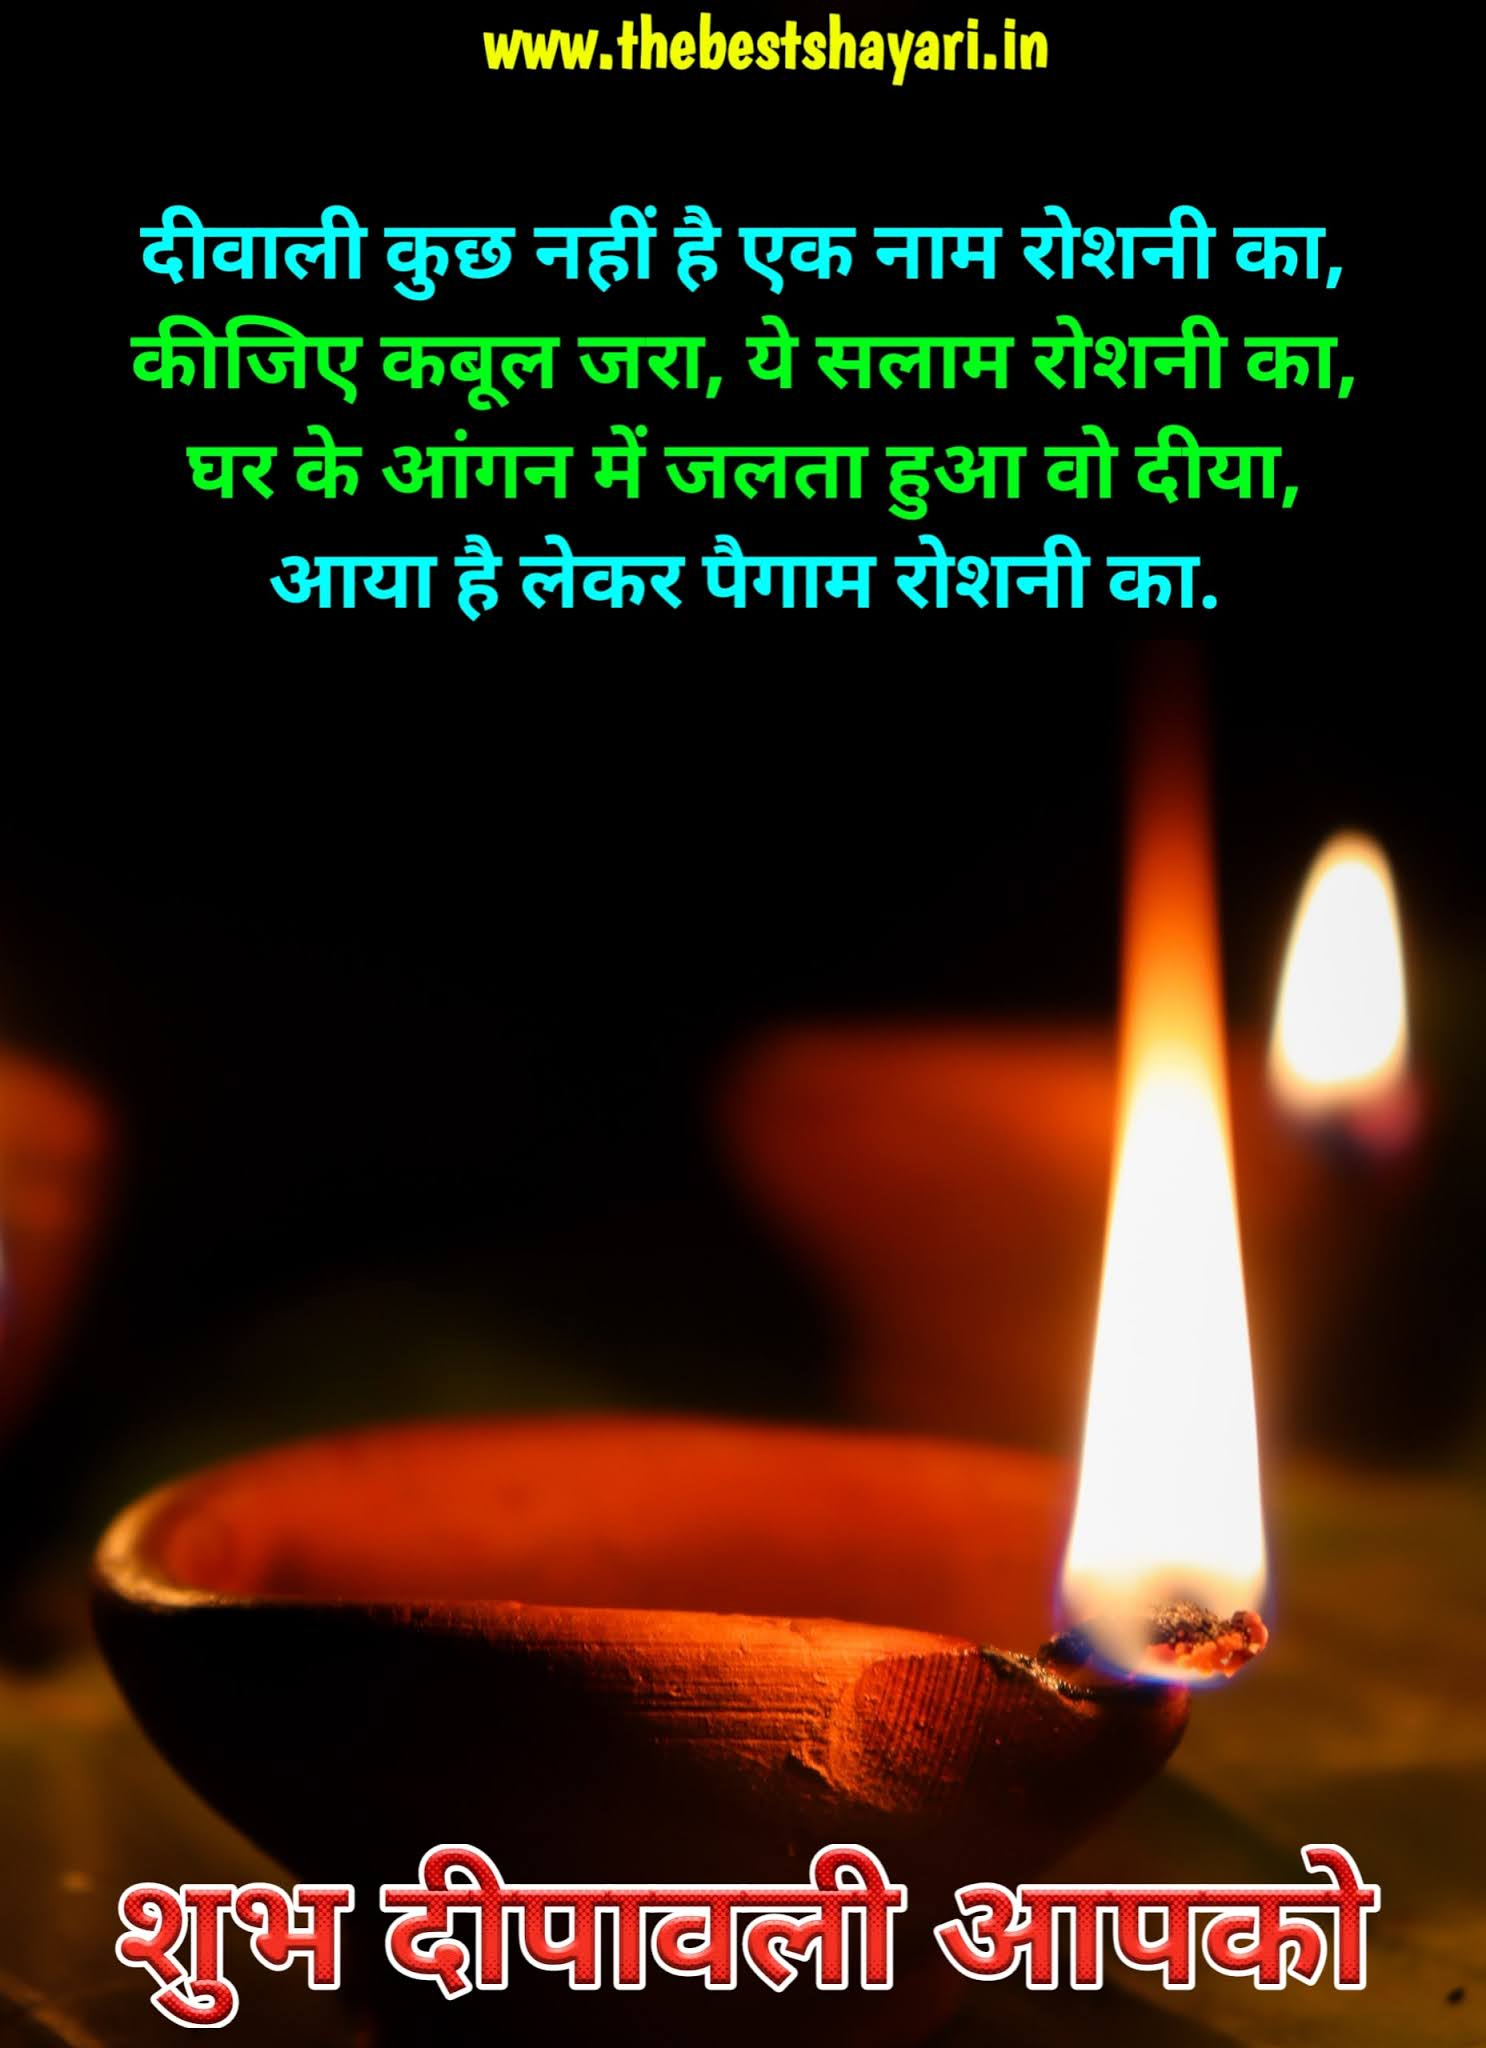 Diwali wishes best quotes